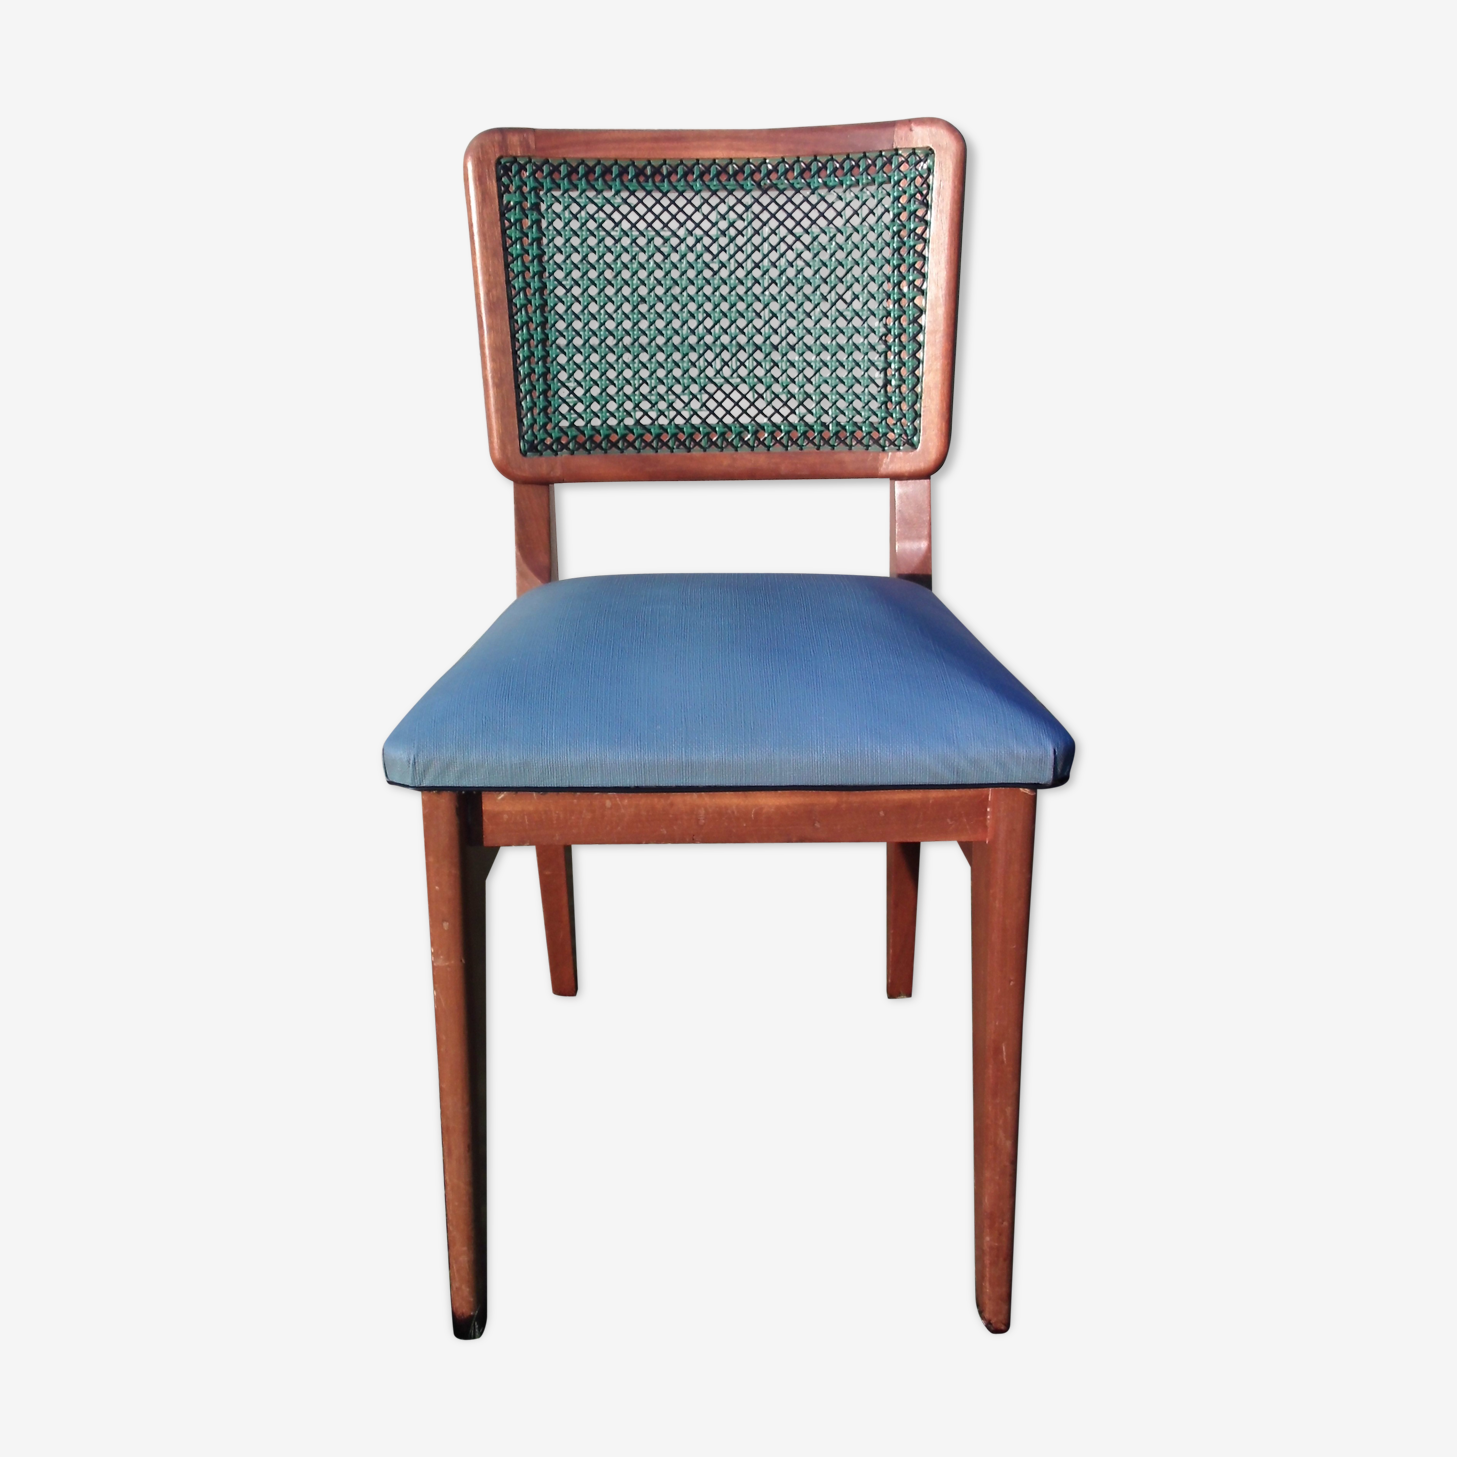 Ancienne chaise style scandinave